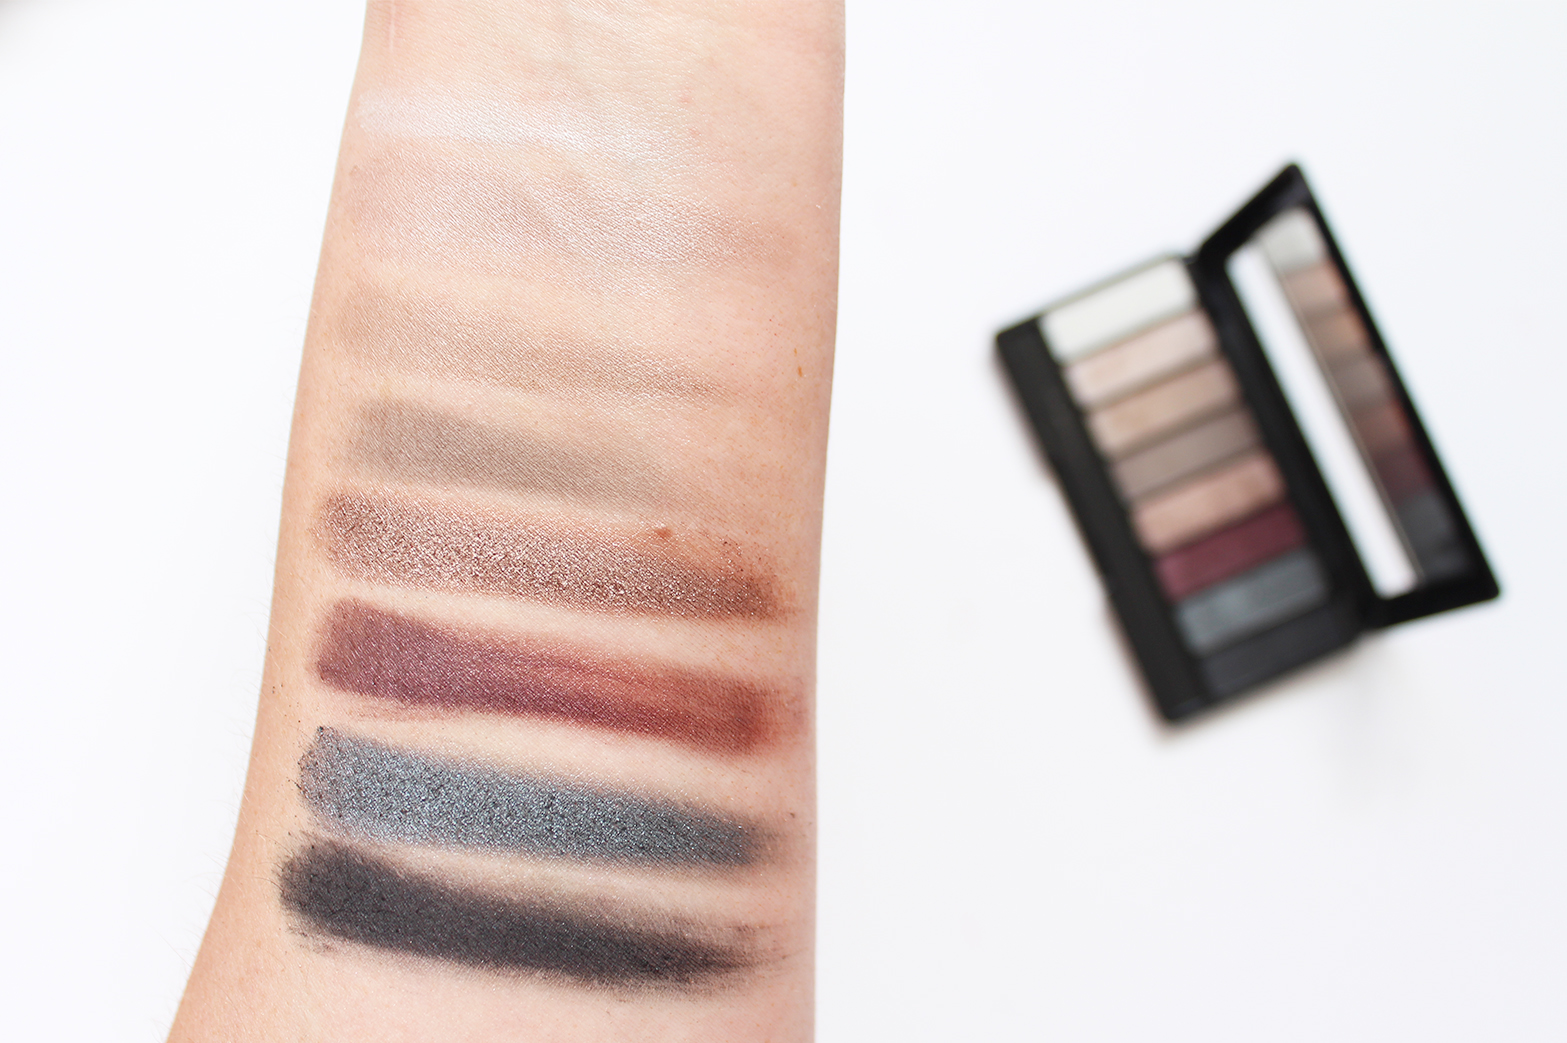 RIMMEL   Magnif'eyes Contouring Eye Palettes - Review + Swatches - CassandraMyee